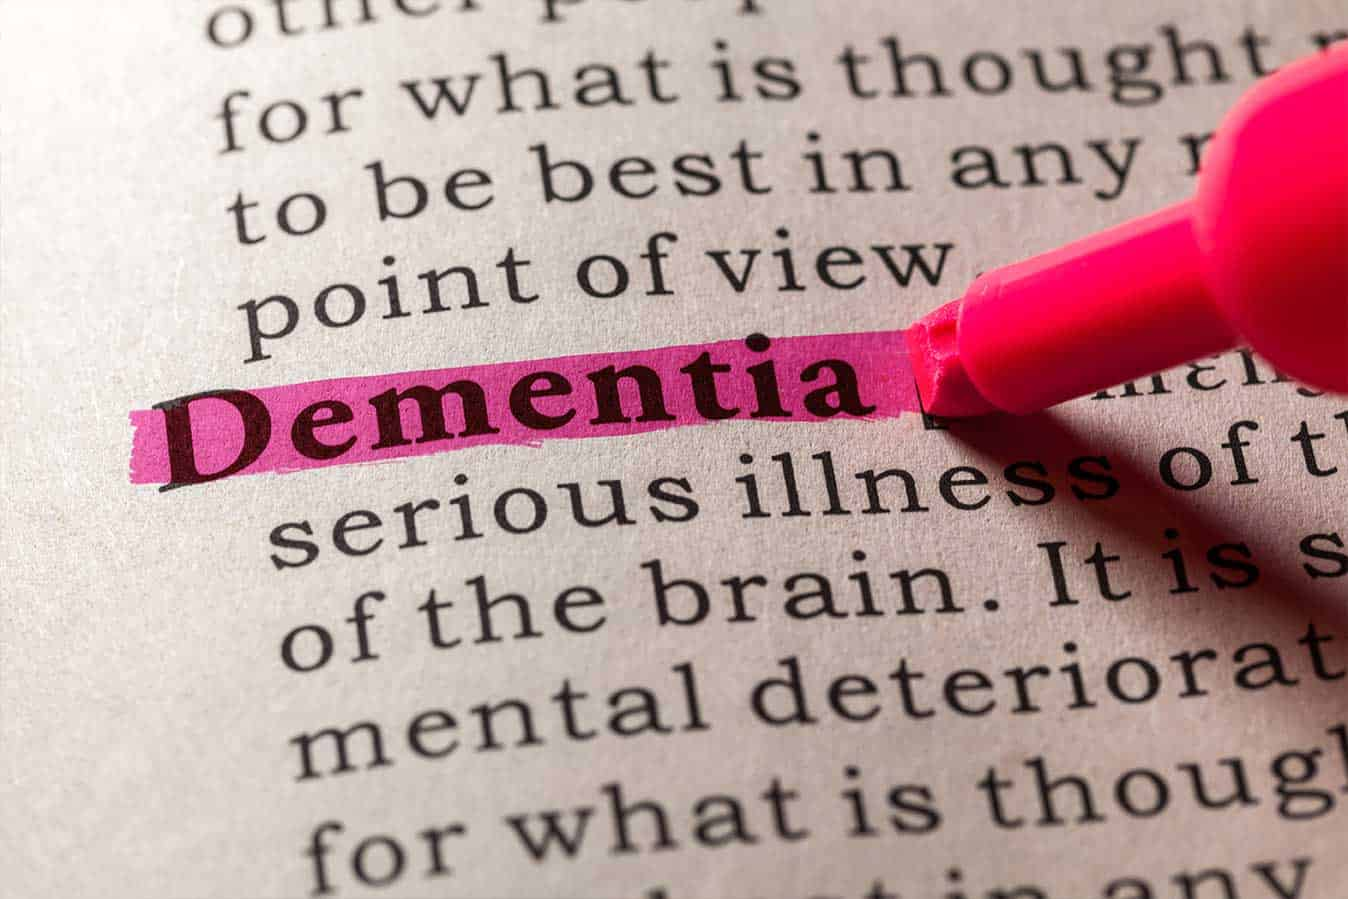 Lifestyle factors could contribute to dementia